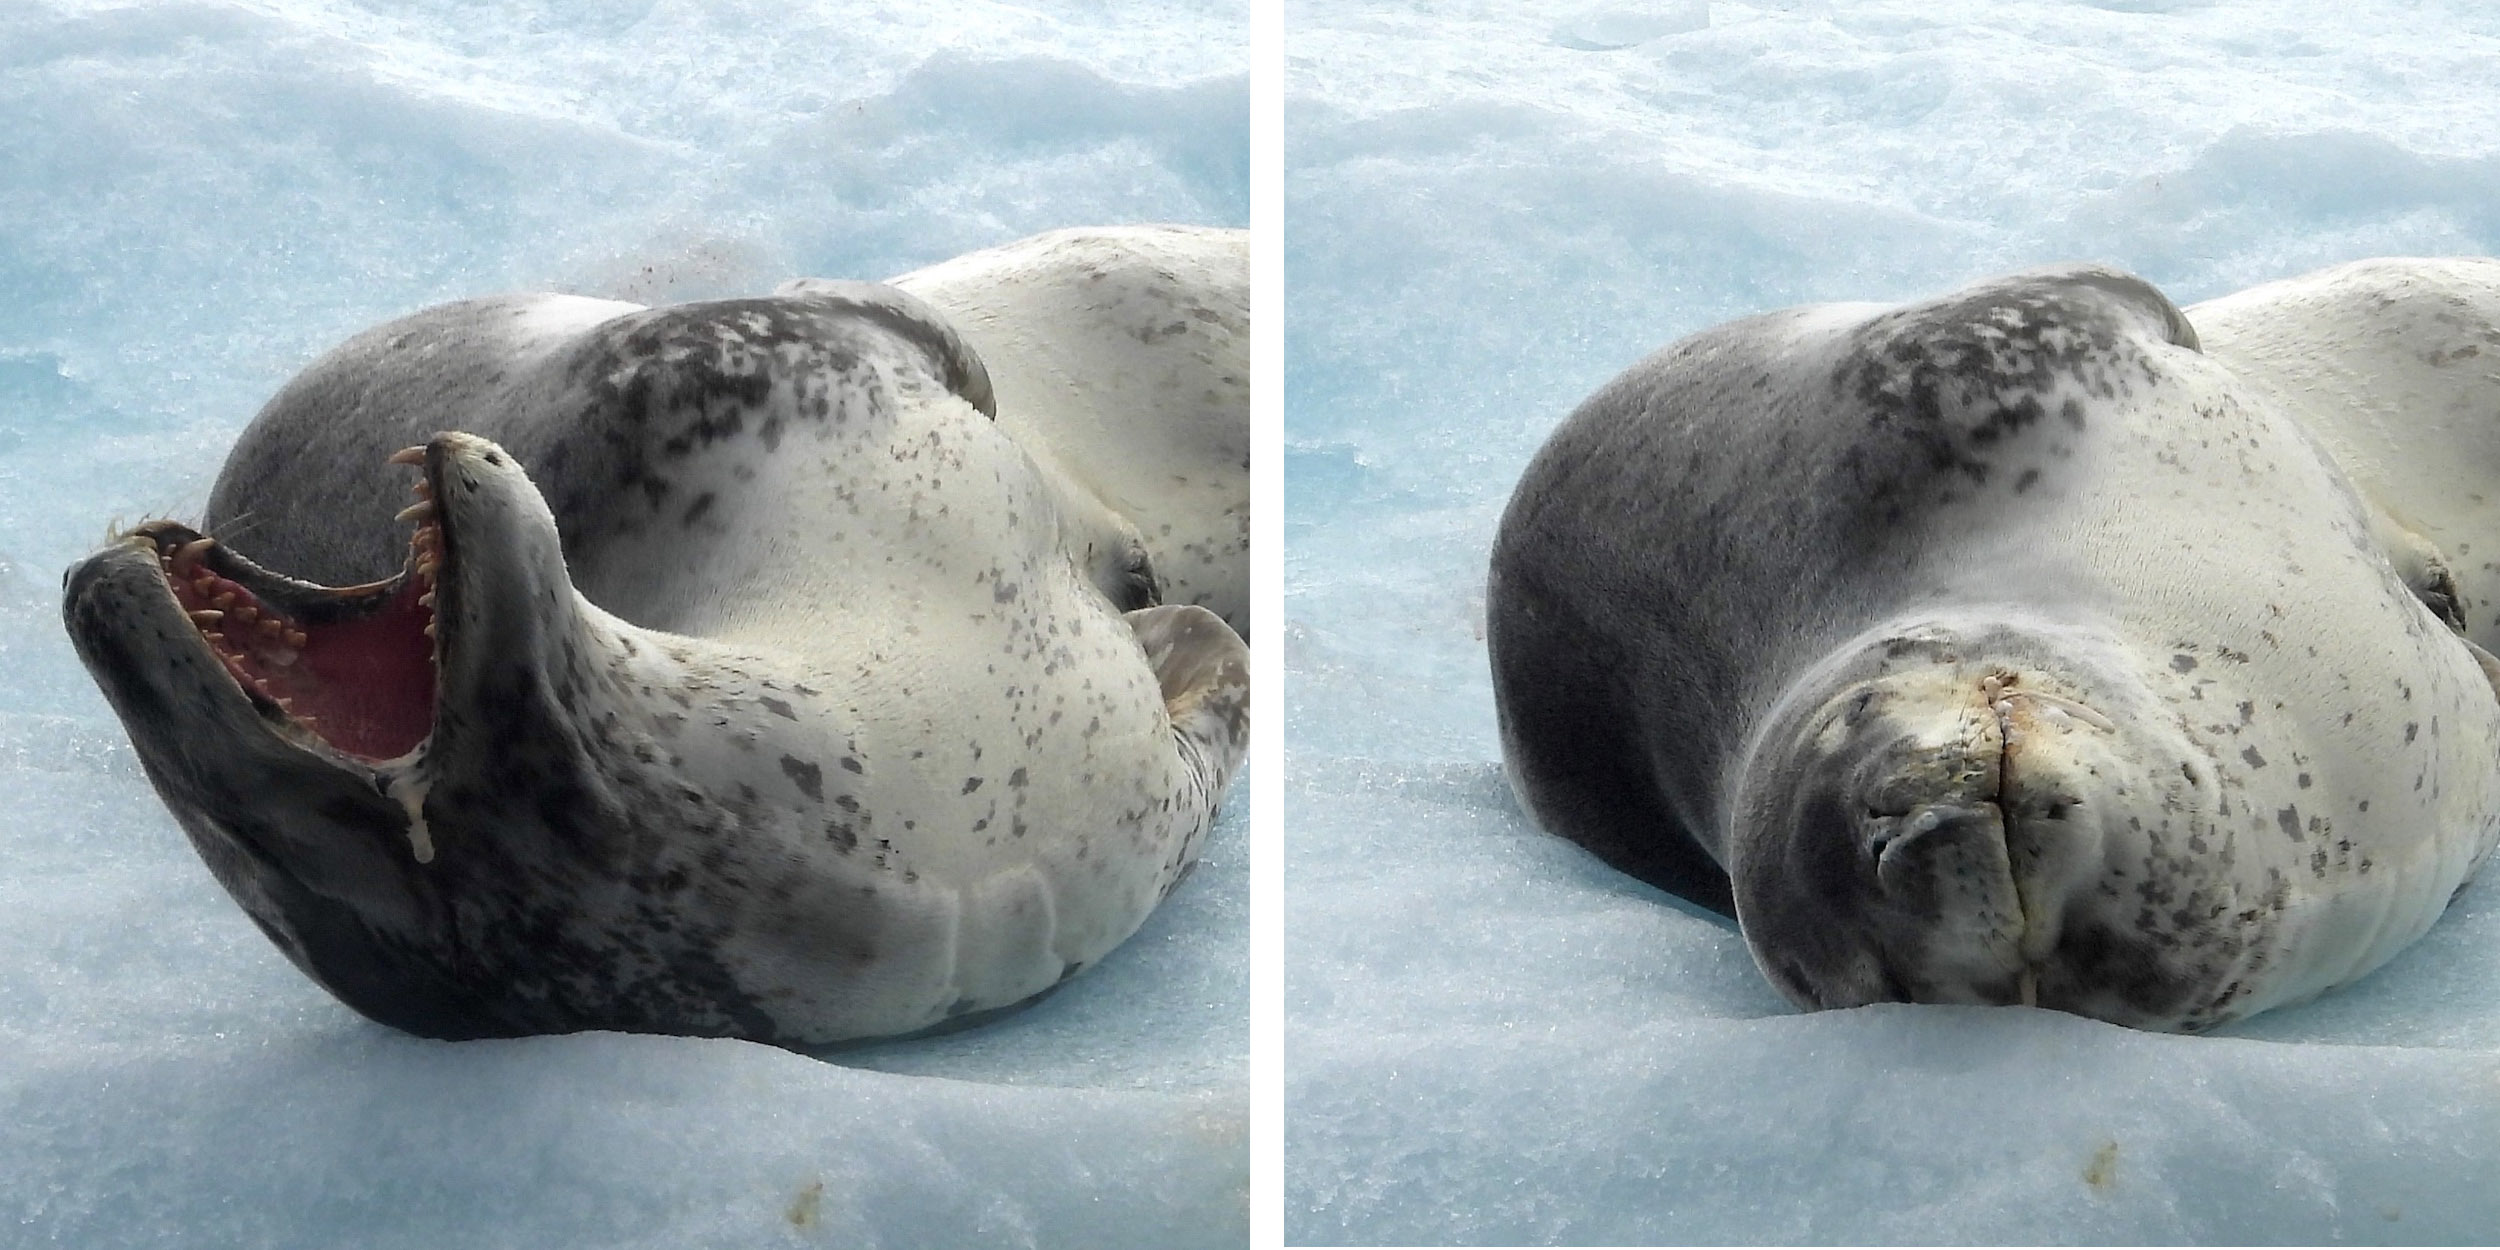 Leopard seal dozing and yawning